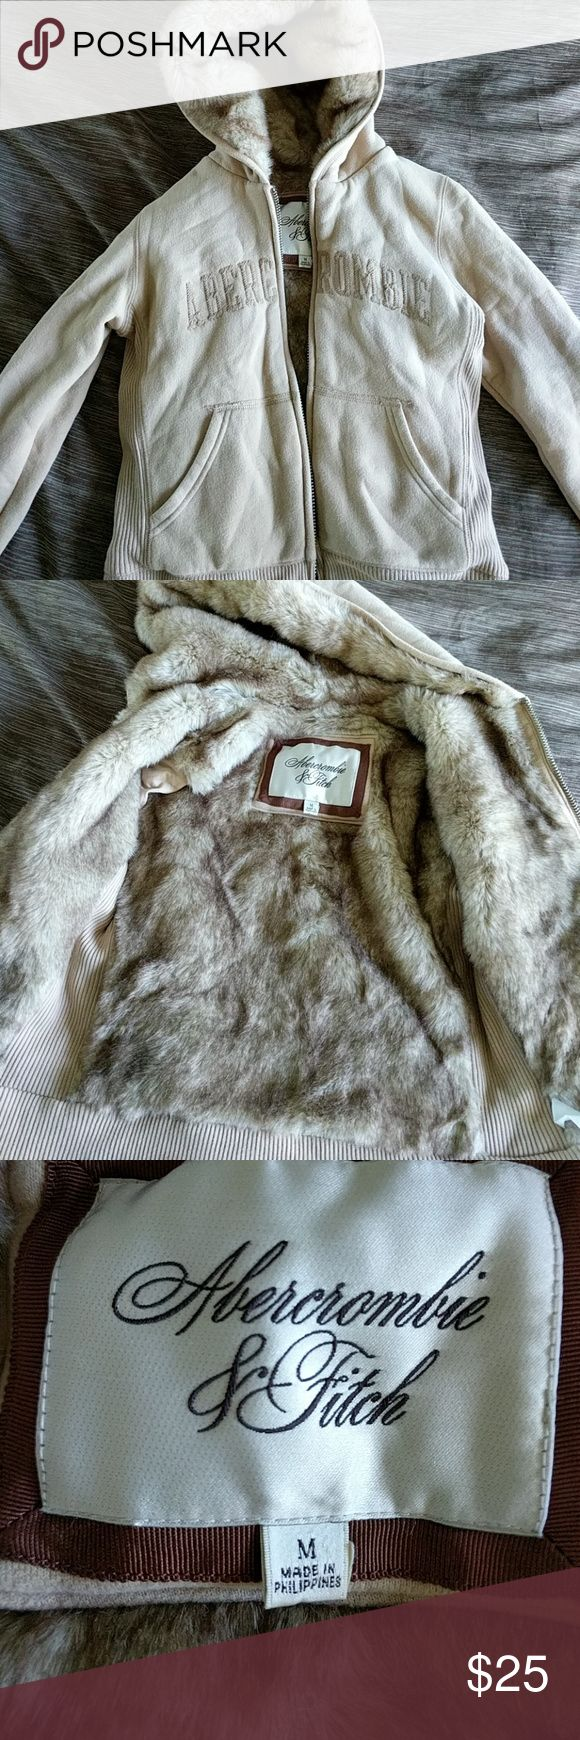 Abercrombie and Fitch faux fur lined sweatshirt Abercrombie and Fitch faux fur lined sweatshirt. Size medium. Faux fur lining everywhere except for sleeves. Like new. Abercrombie & Fitch Jackets & Coats